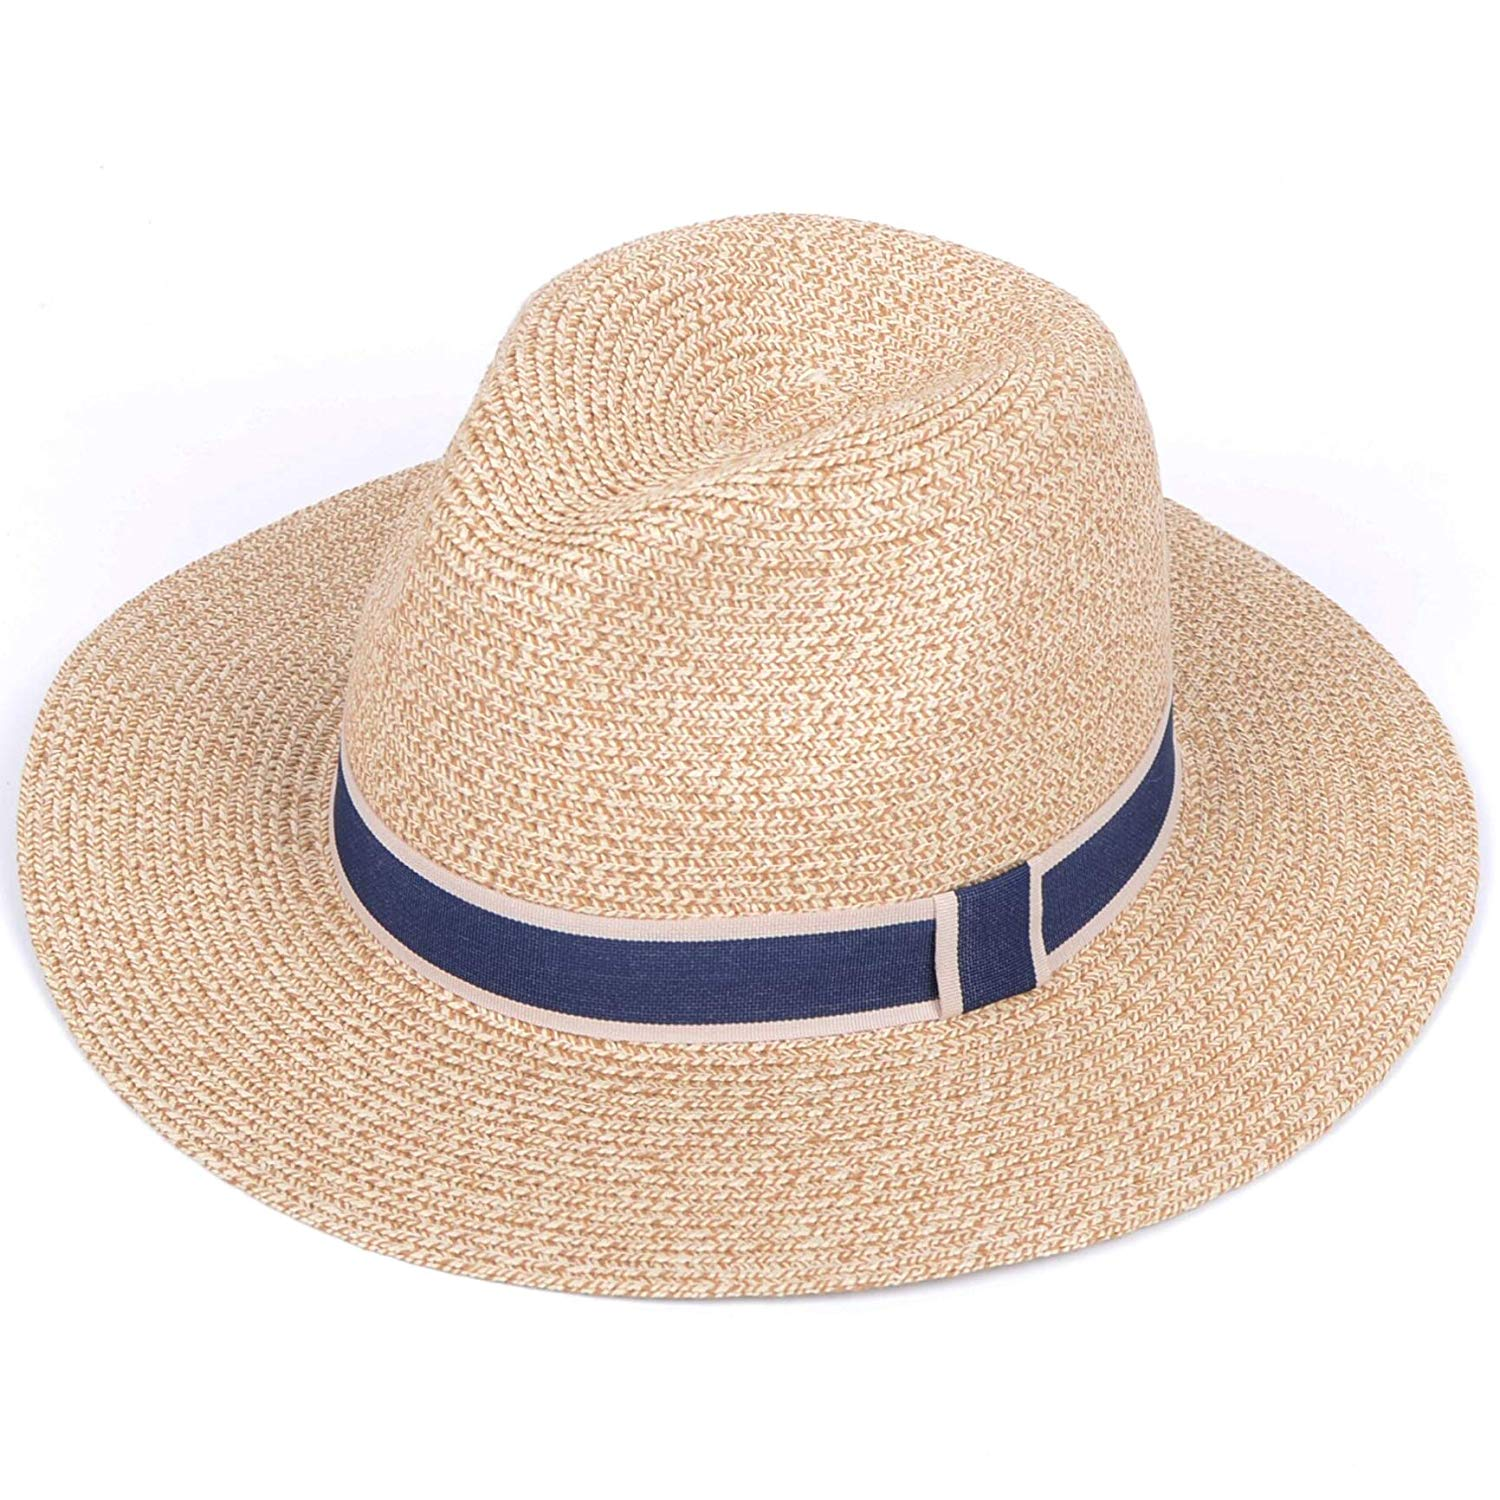 a22468682 Get Quotations · Lanzom Men Women Wide Brim Straw Panama Roll up Hat  Contrast Color Fedora Beach Sun Hat